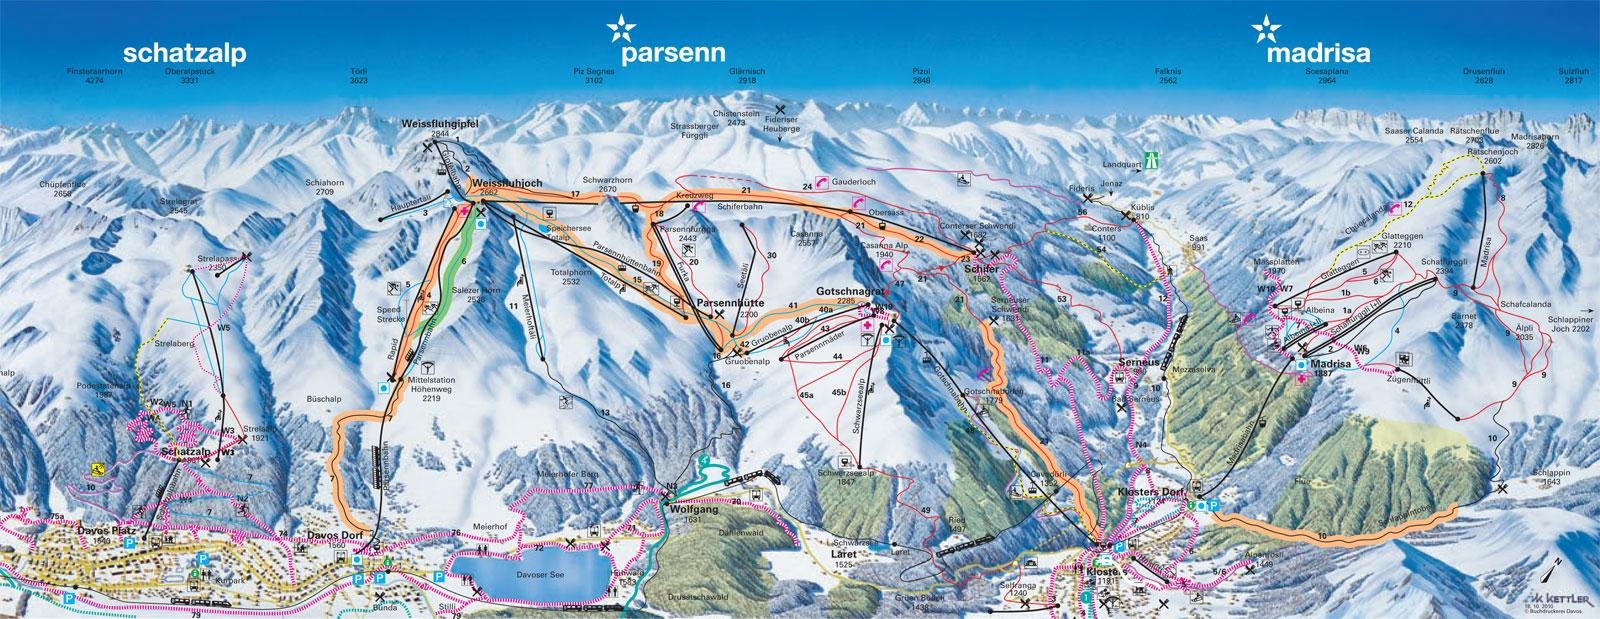 Piste Maps for Swiss Ski Resorts J2Ski